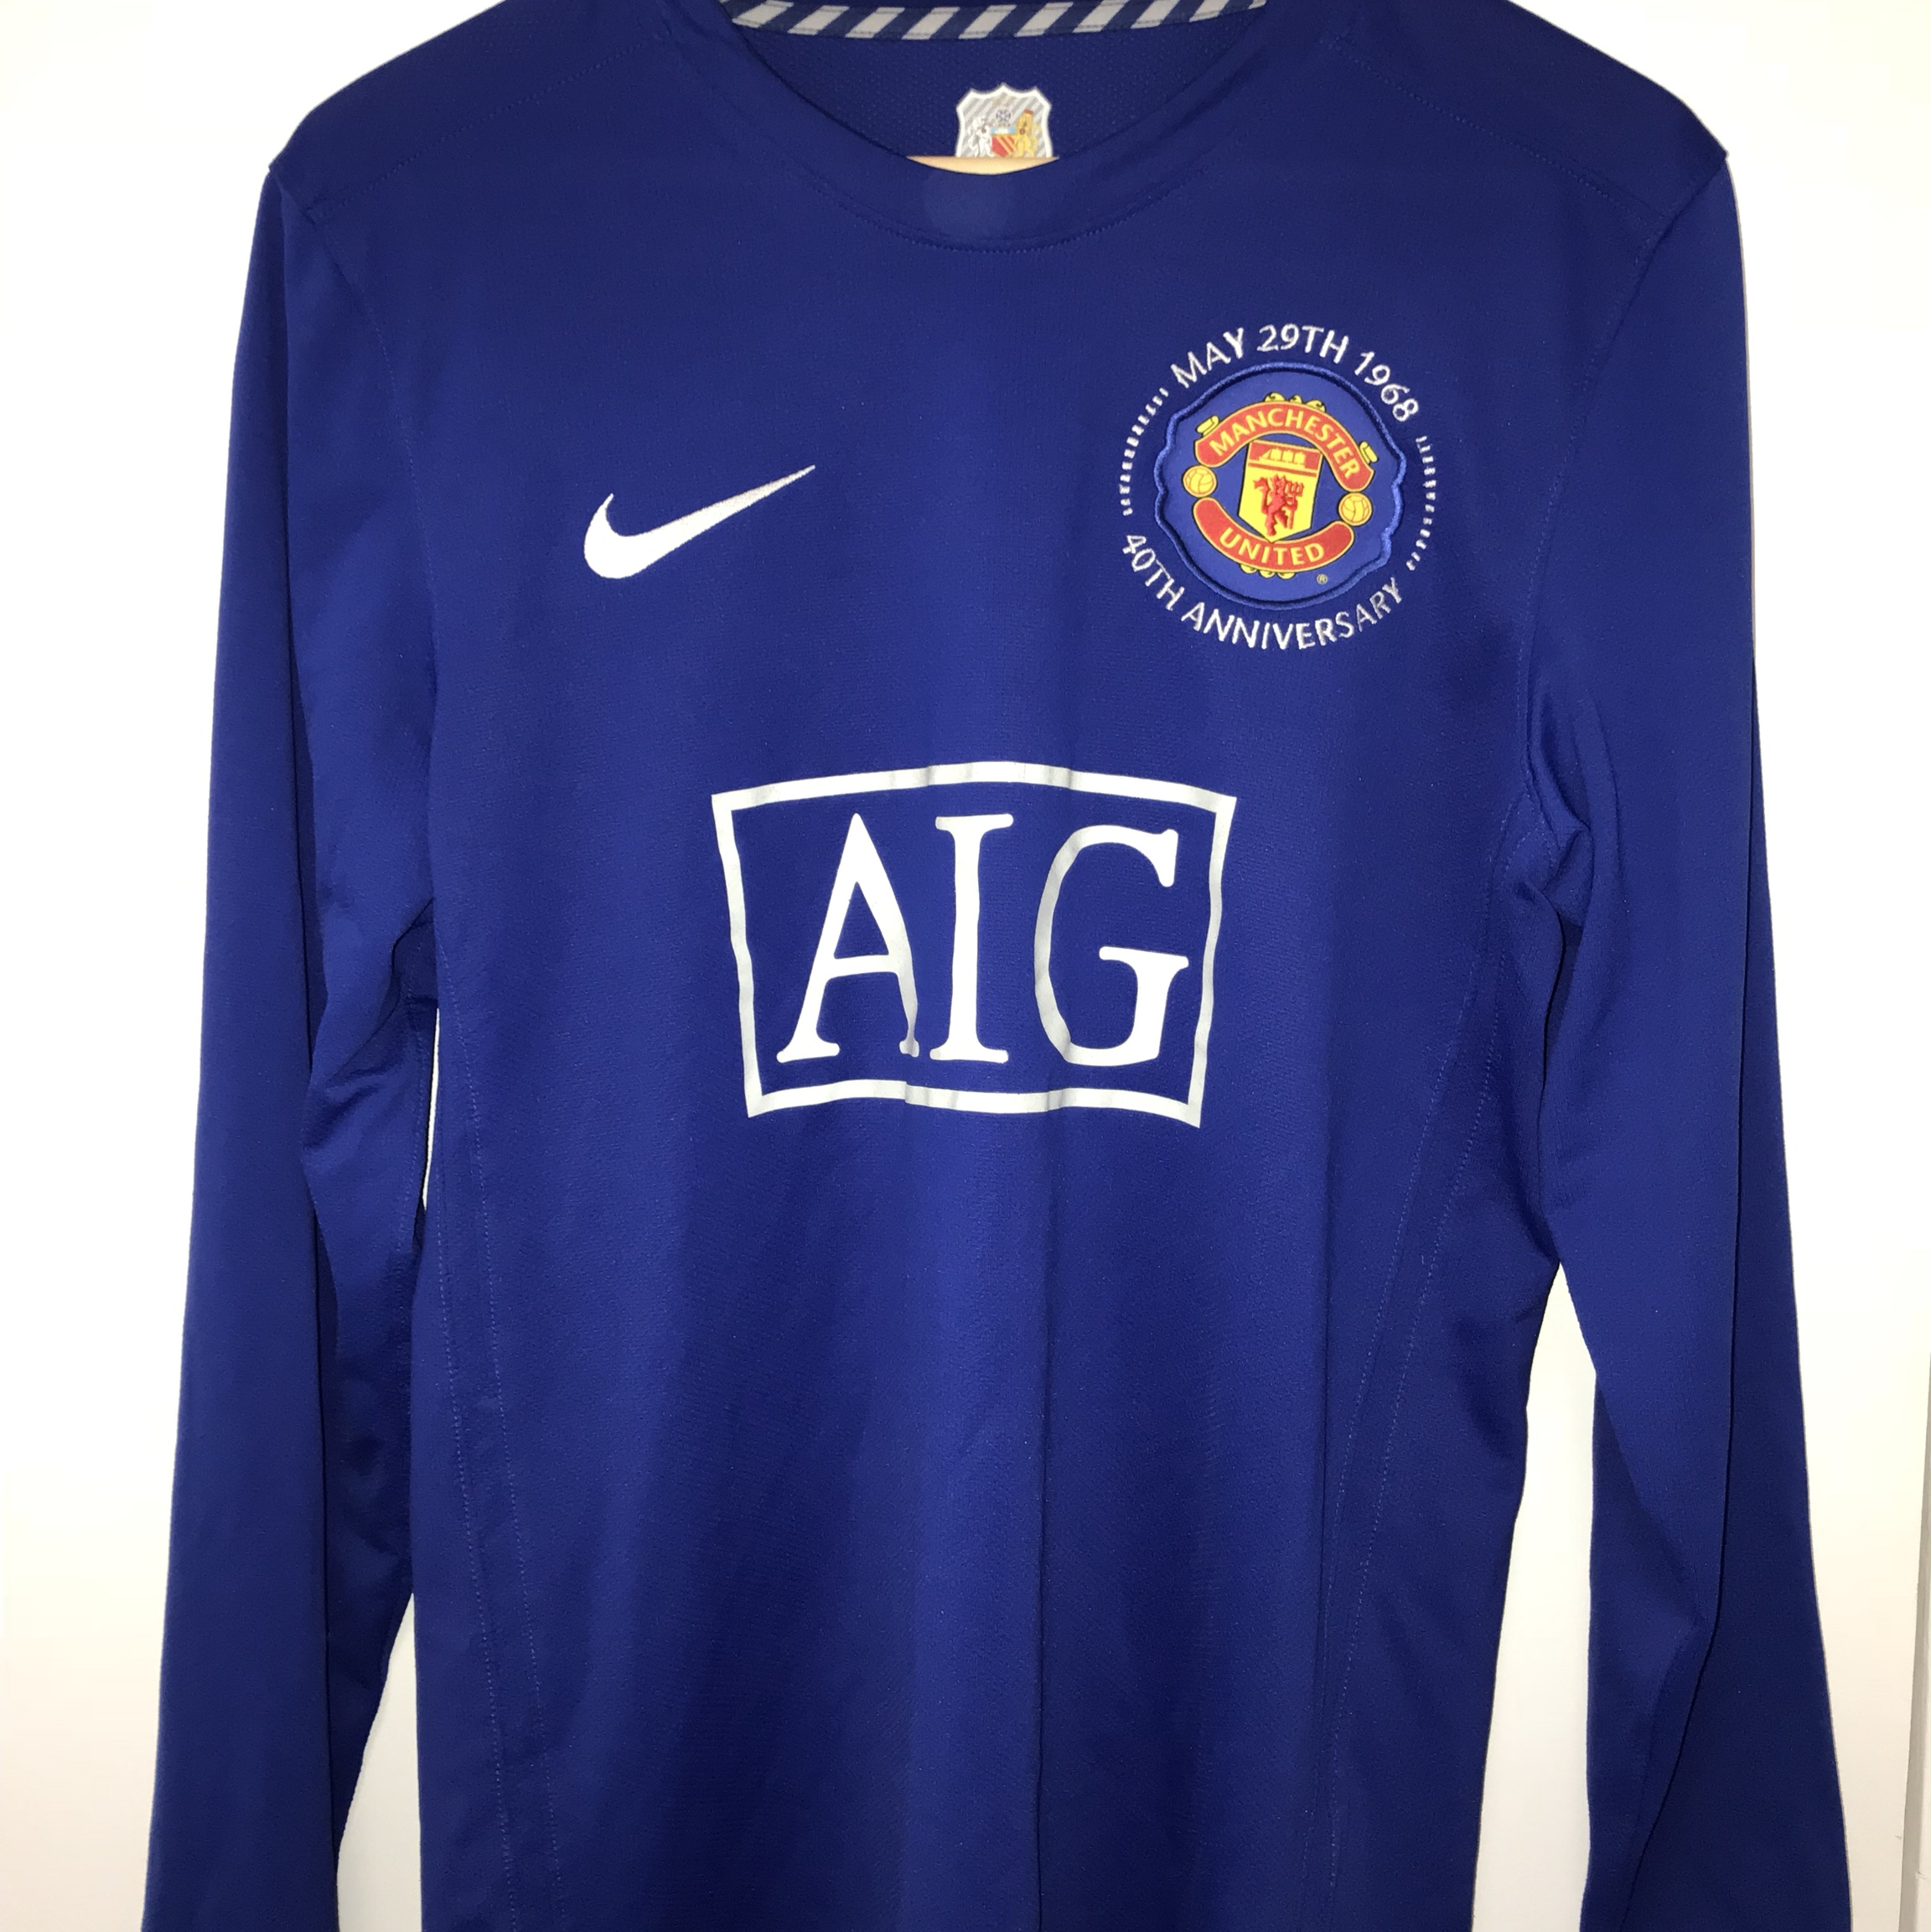 buy online 0fa86 ebd6b Manchester United 40th anniversary kits with the... - Depop